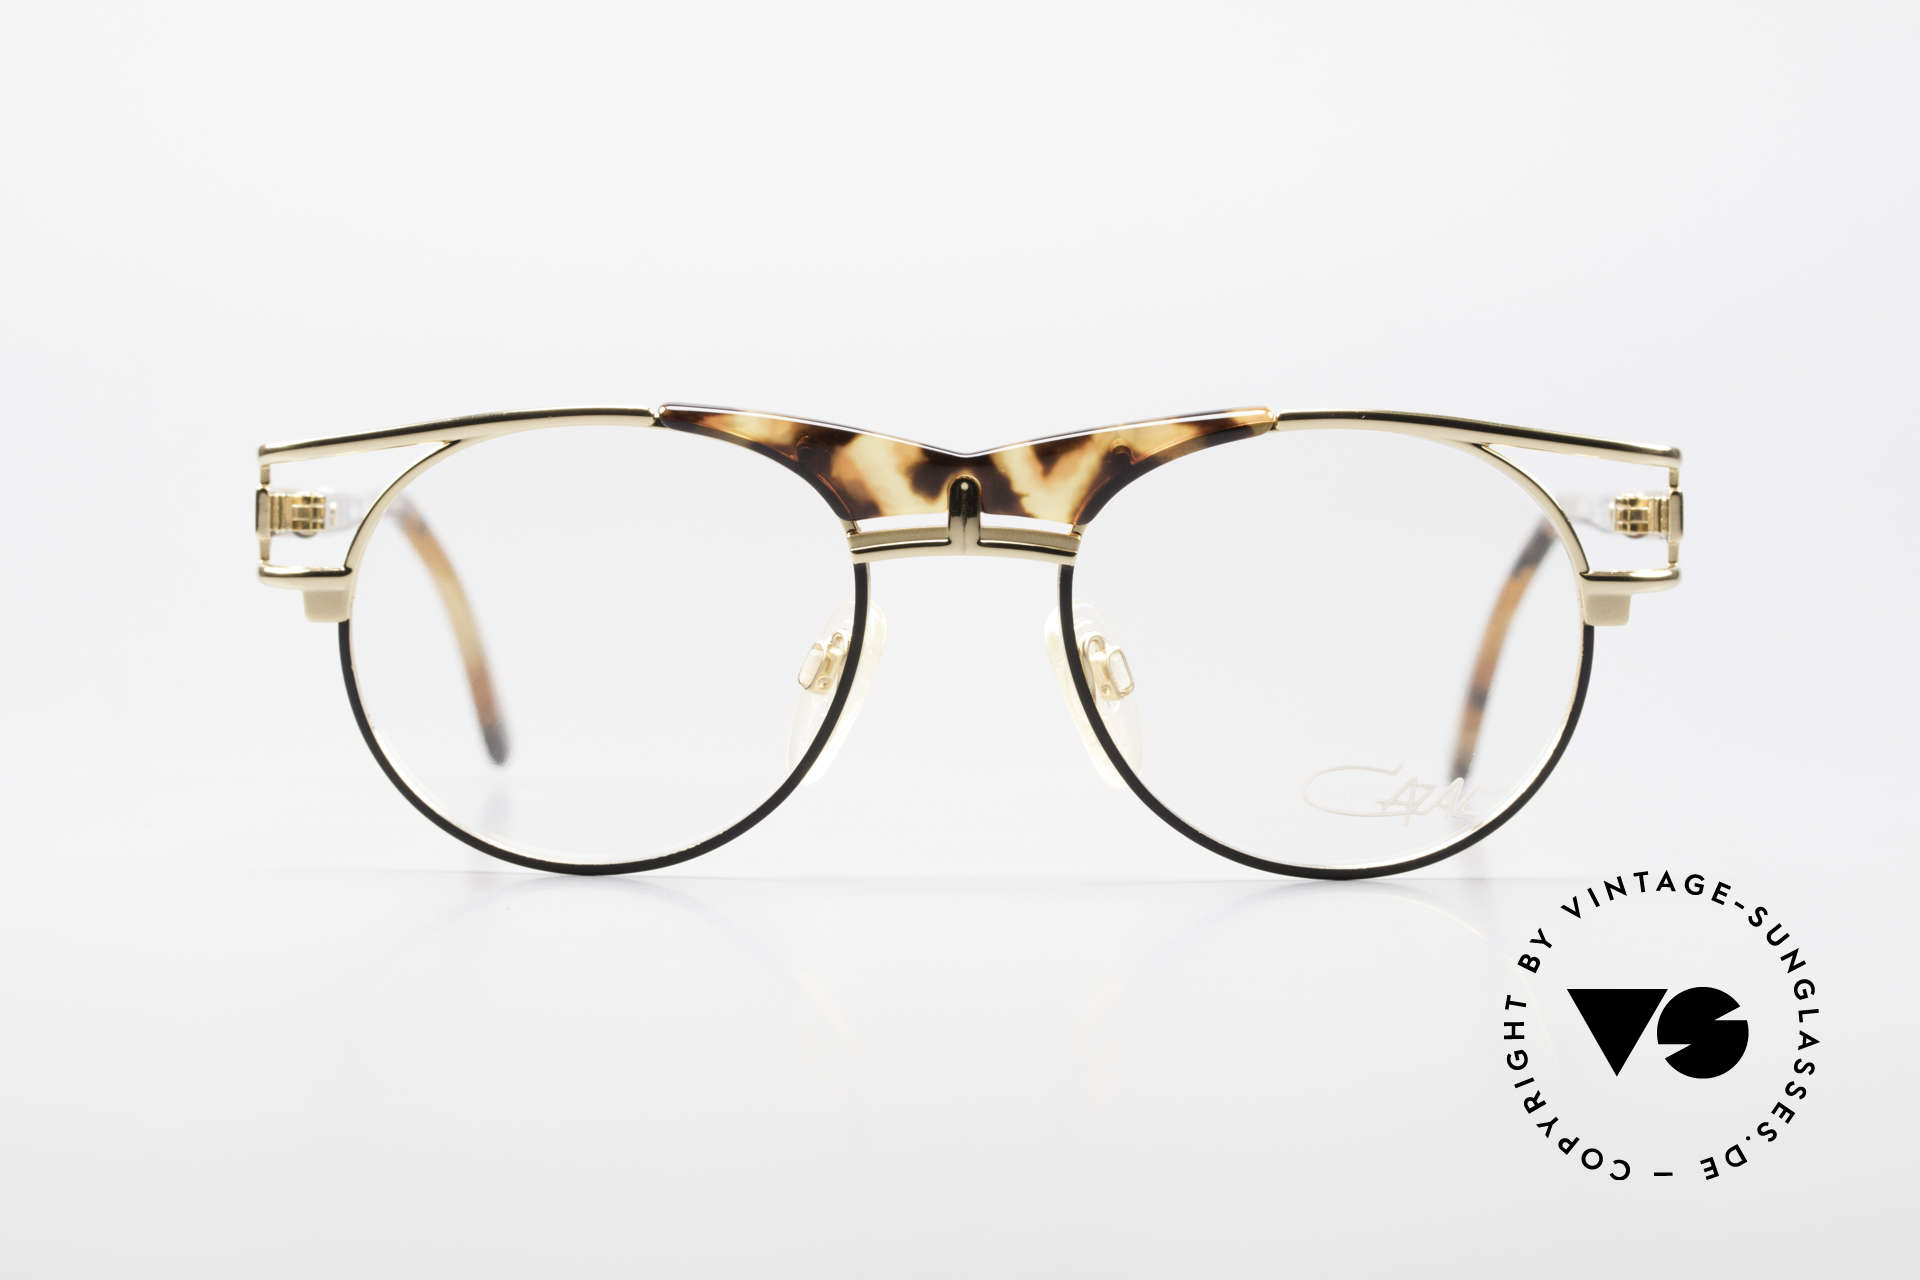 Cazal 244 Iconic 90's Vintage Eyeglasses, 1st class craftsmanship & very pleasant to wear, Made for Men and Women